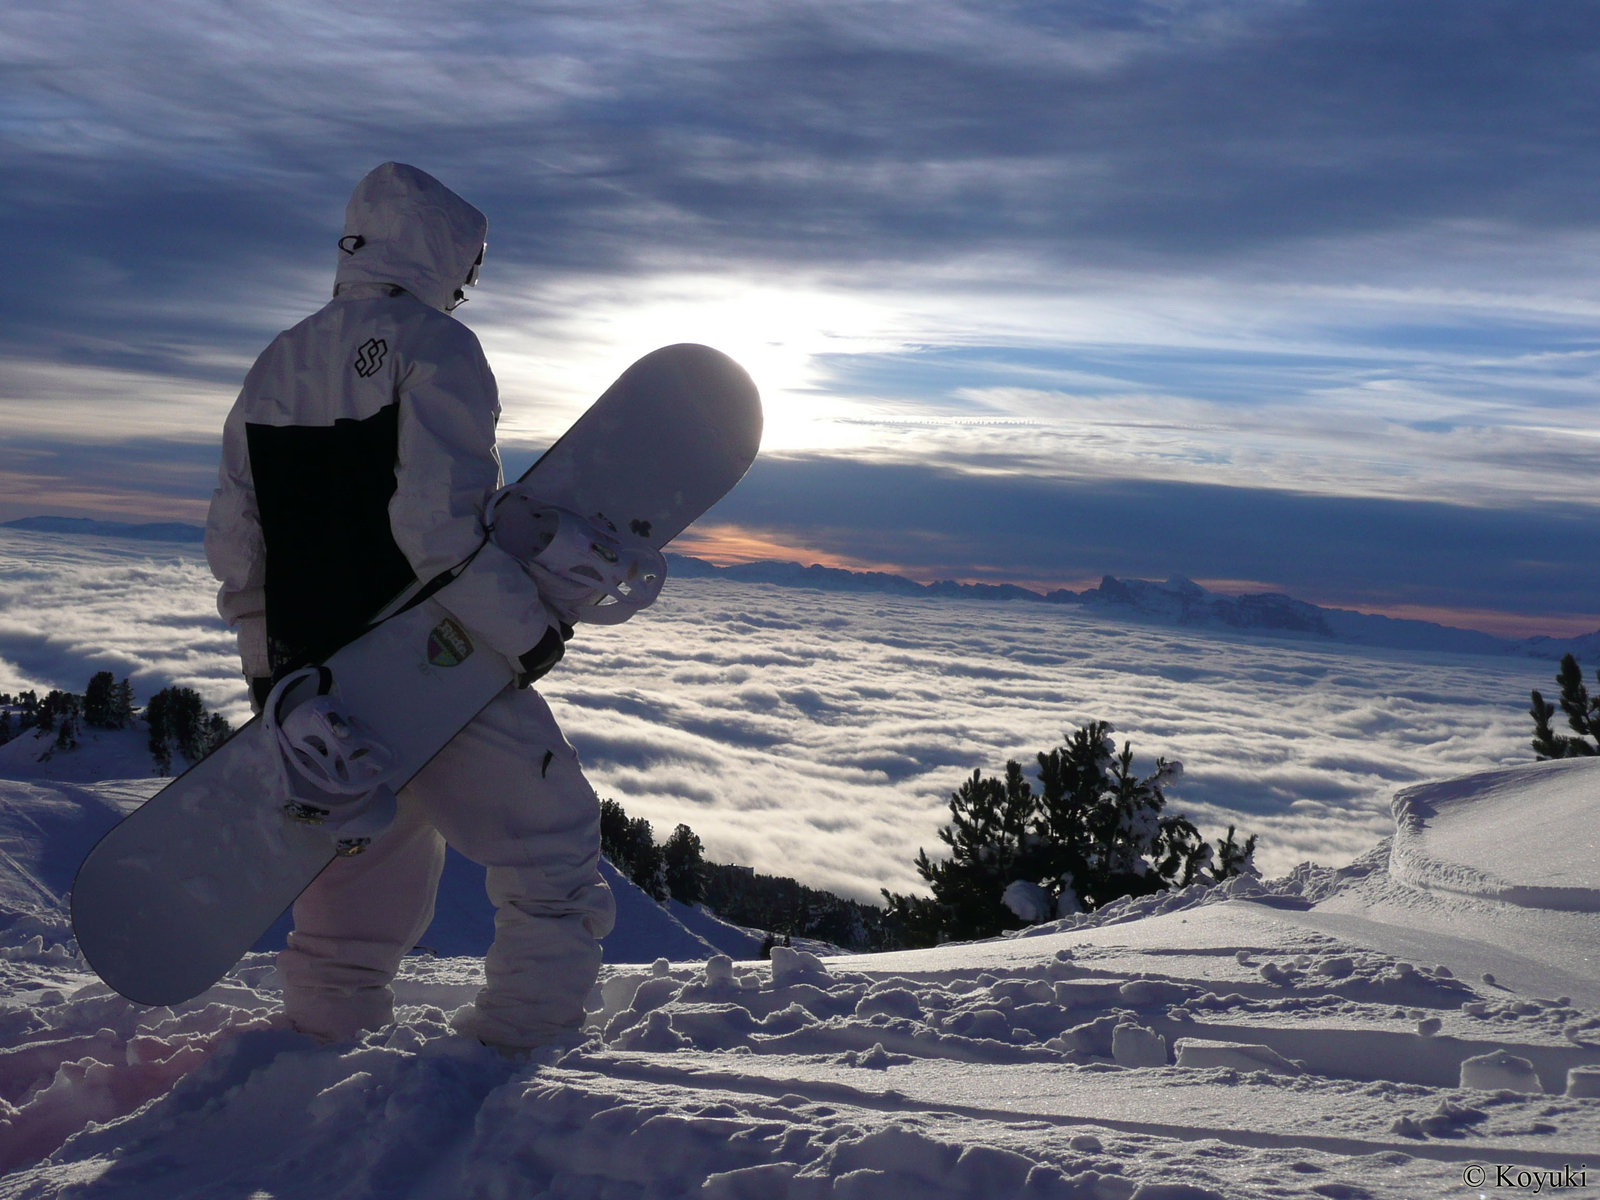 1600x1200 - Snowboarding Wallpapers 31